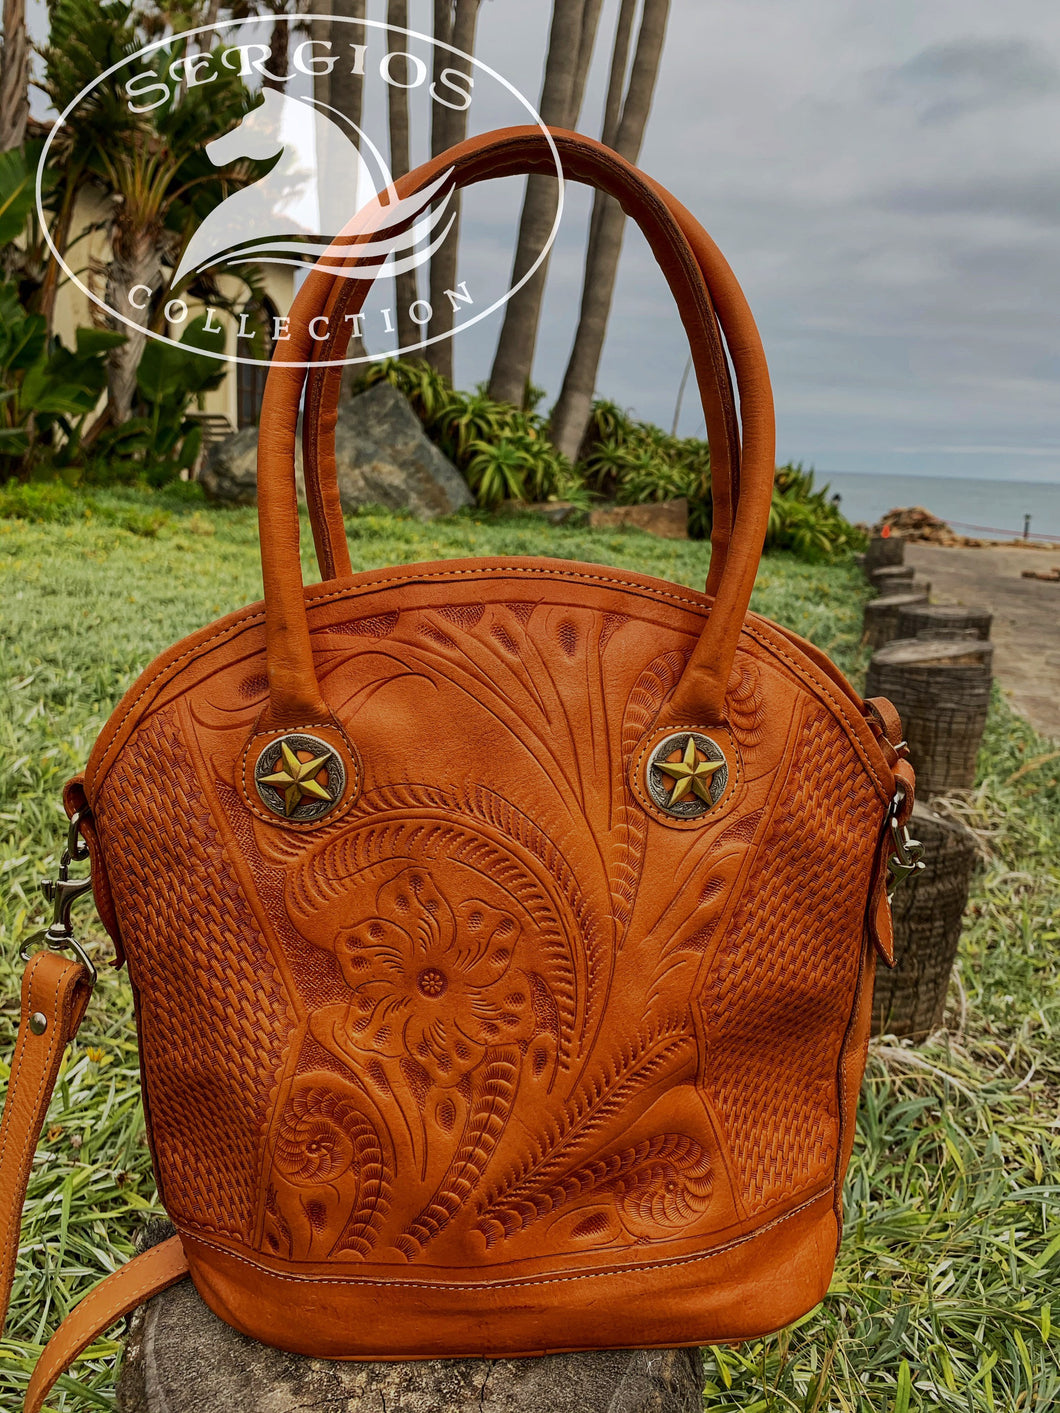 Sergios Vintage handmade Tooled leather shoulder bag